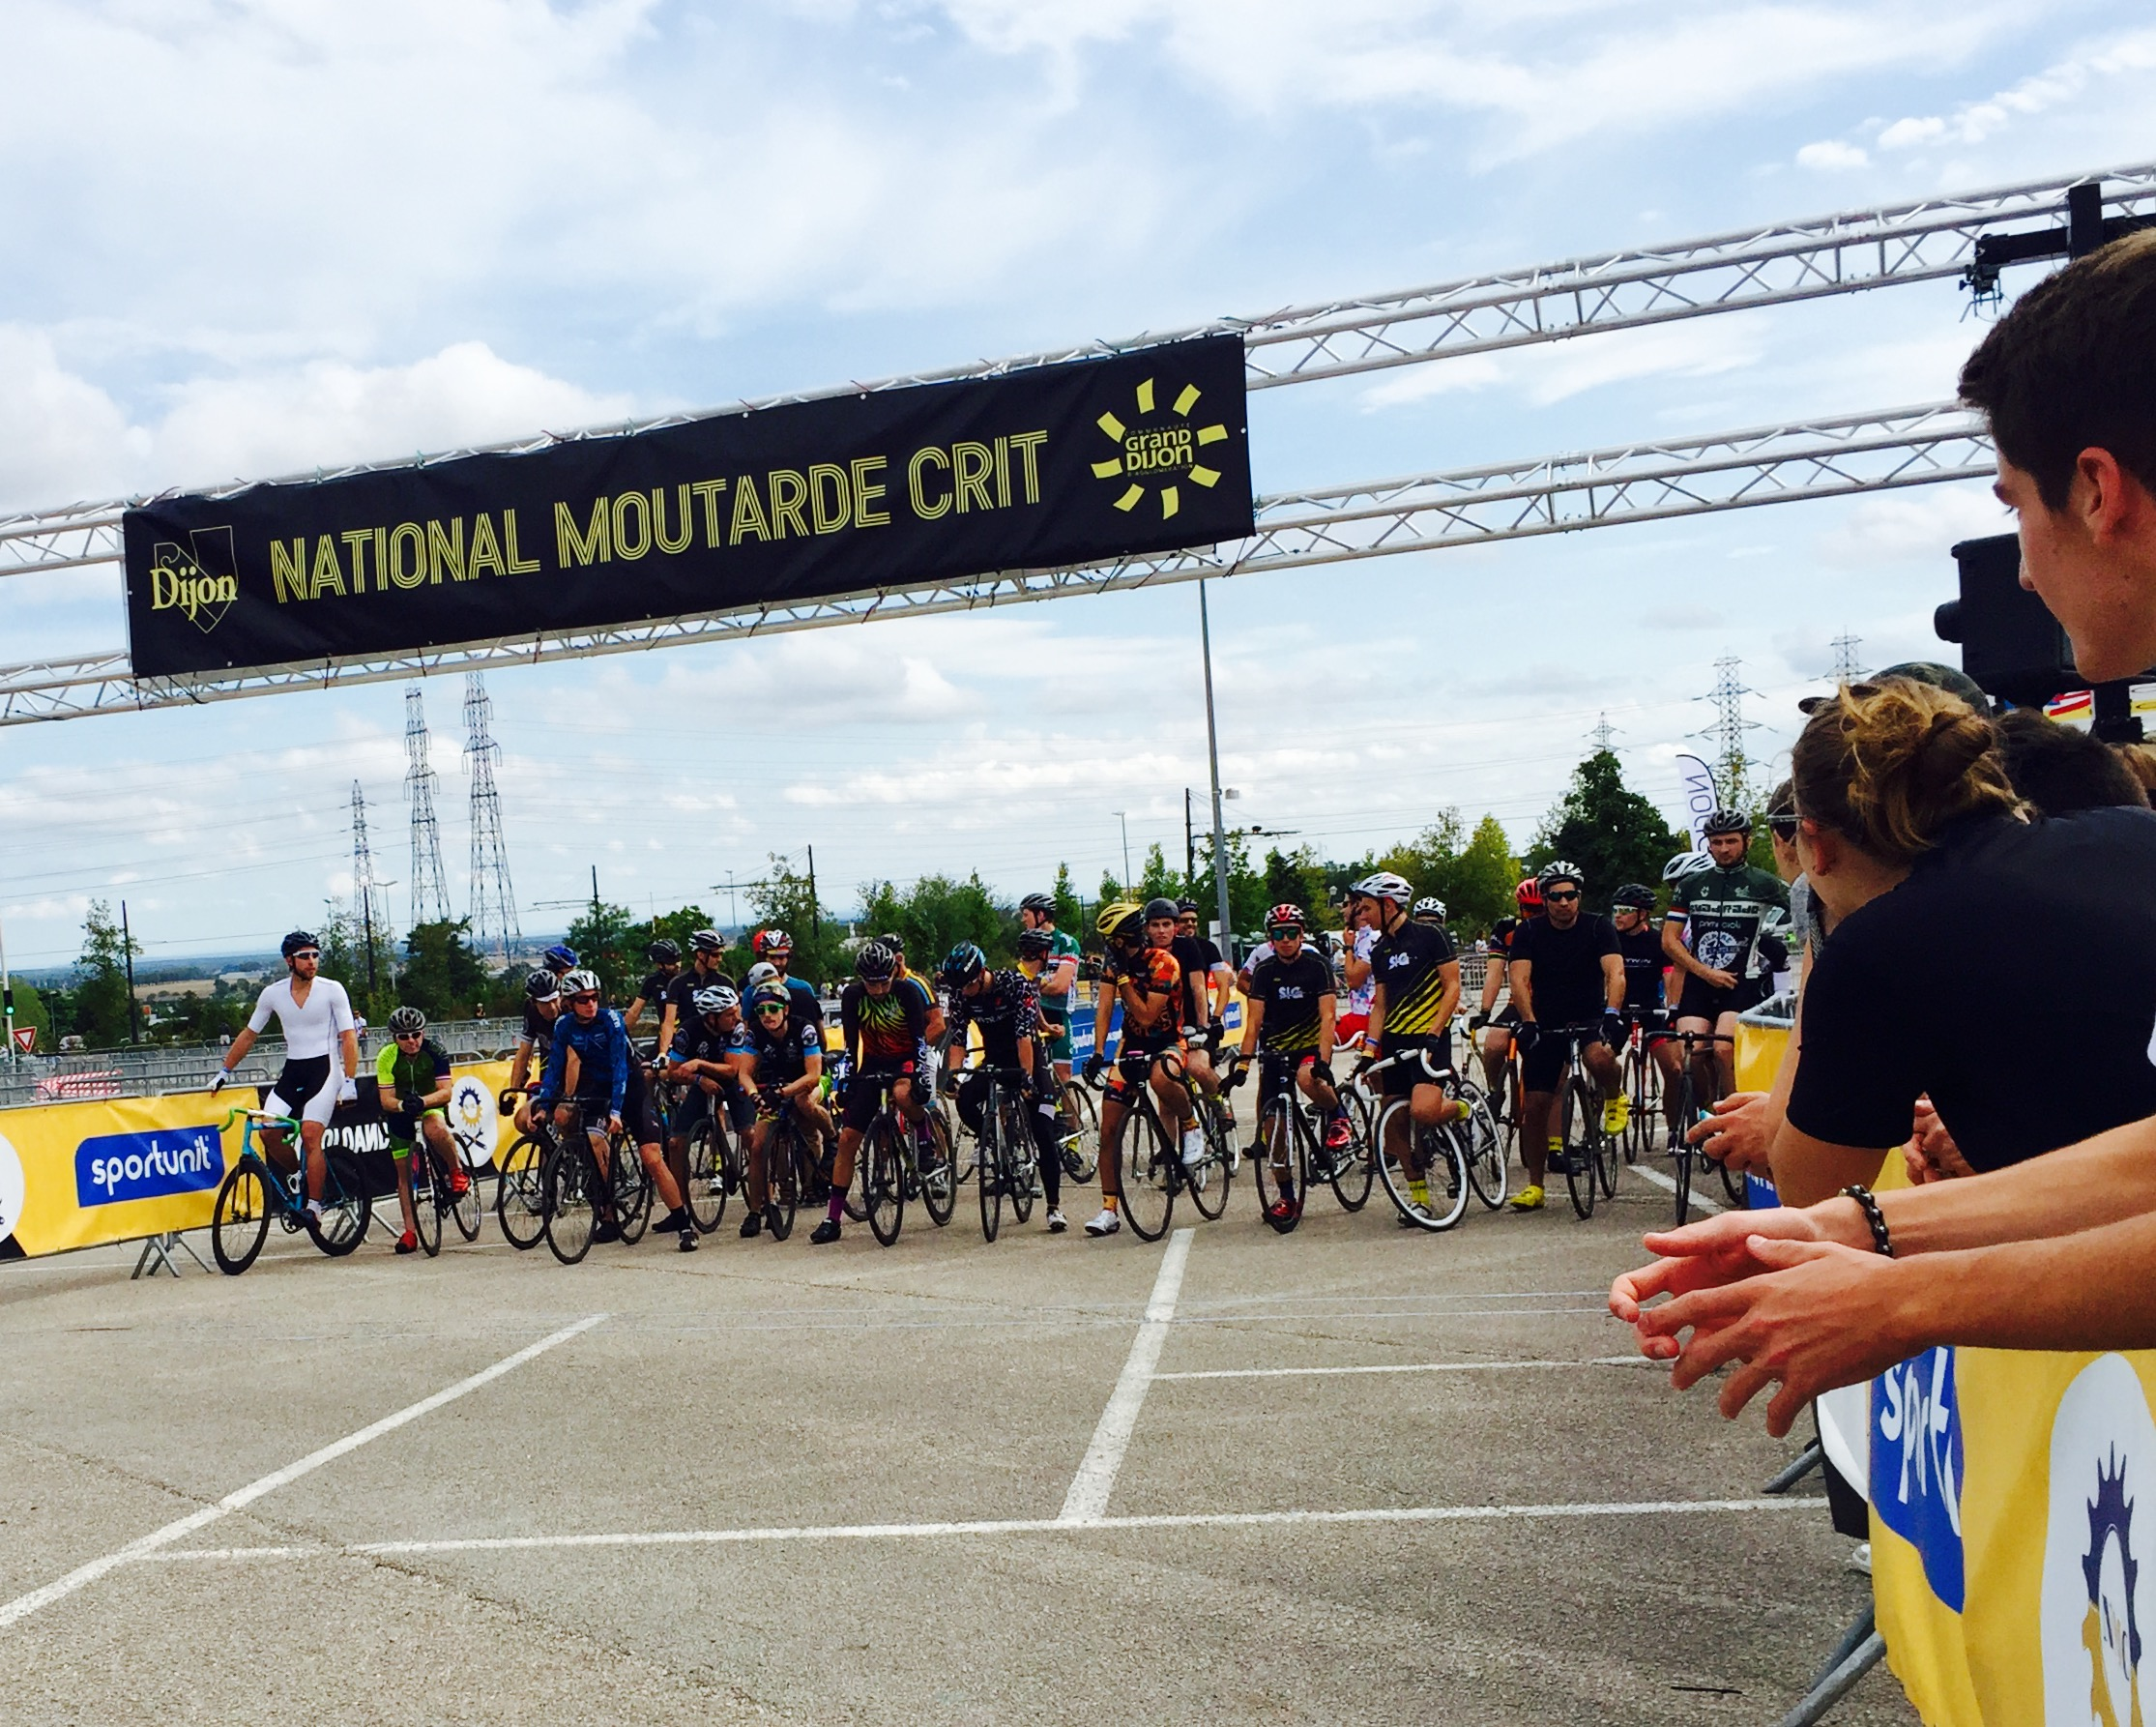 National Moutarde Crit 2016